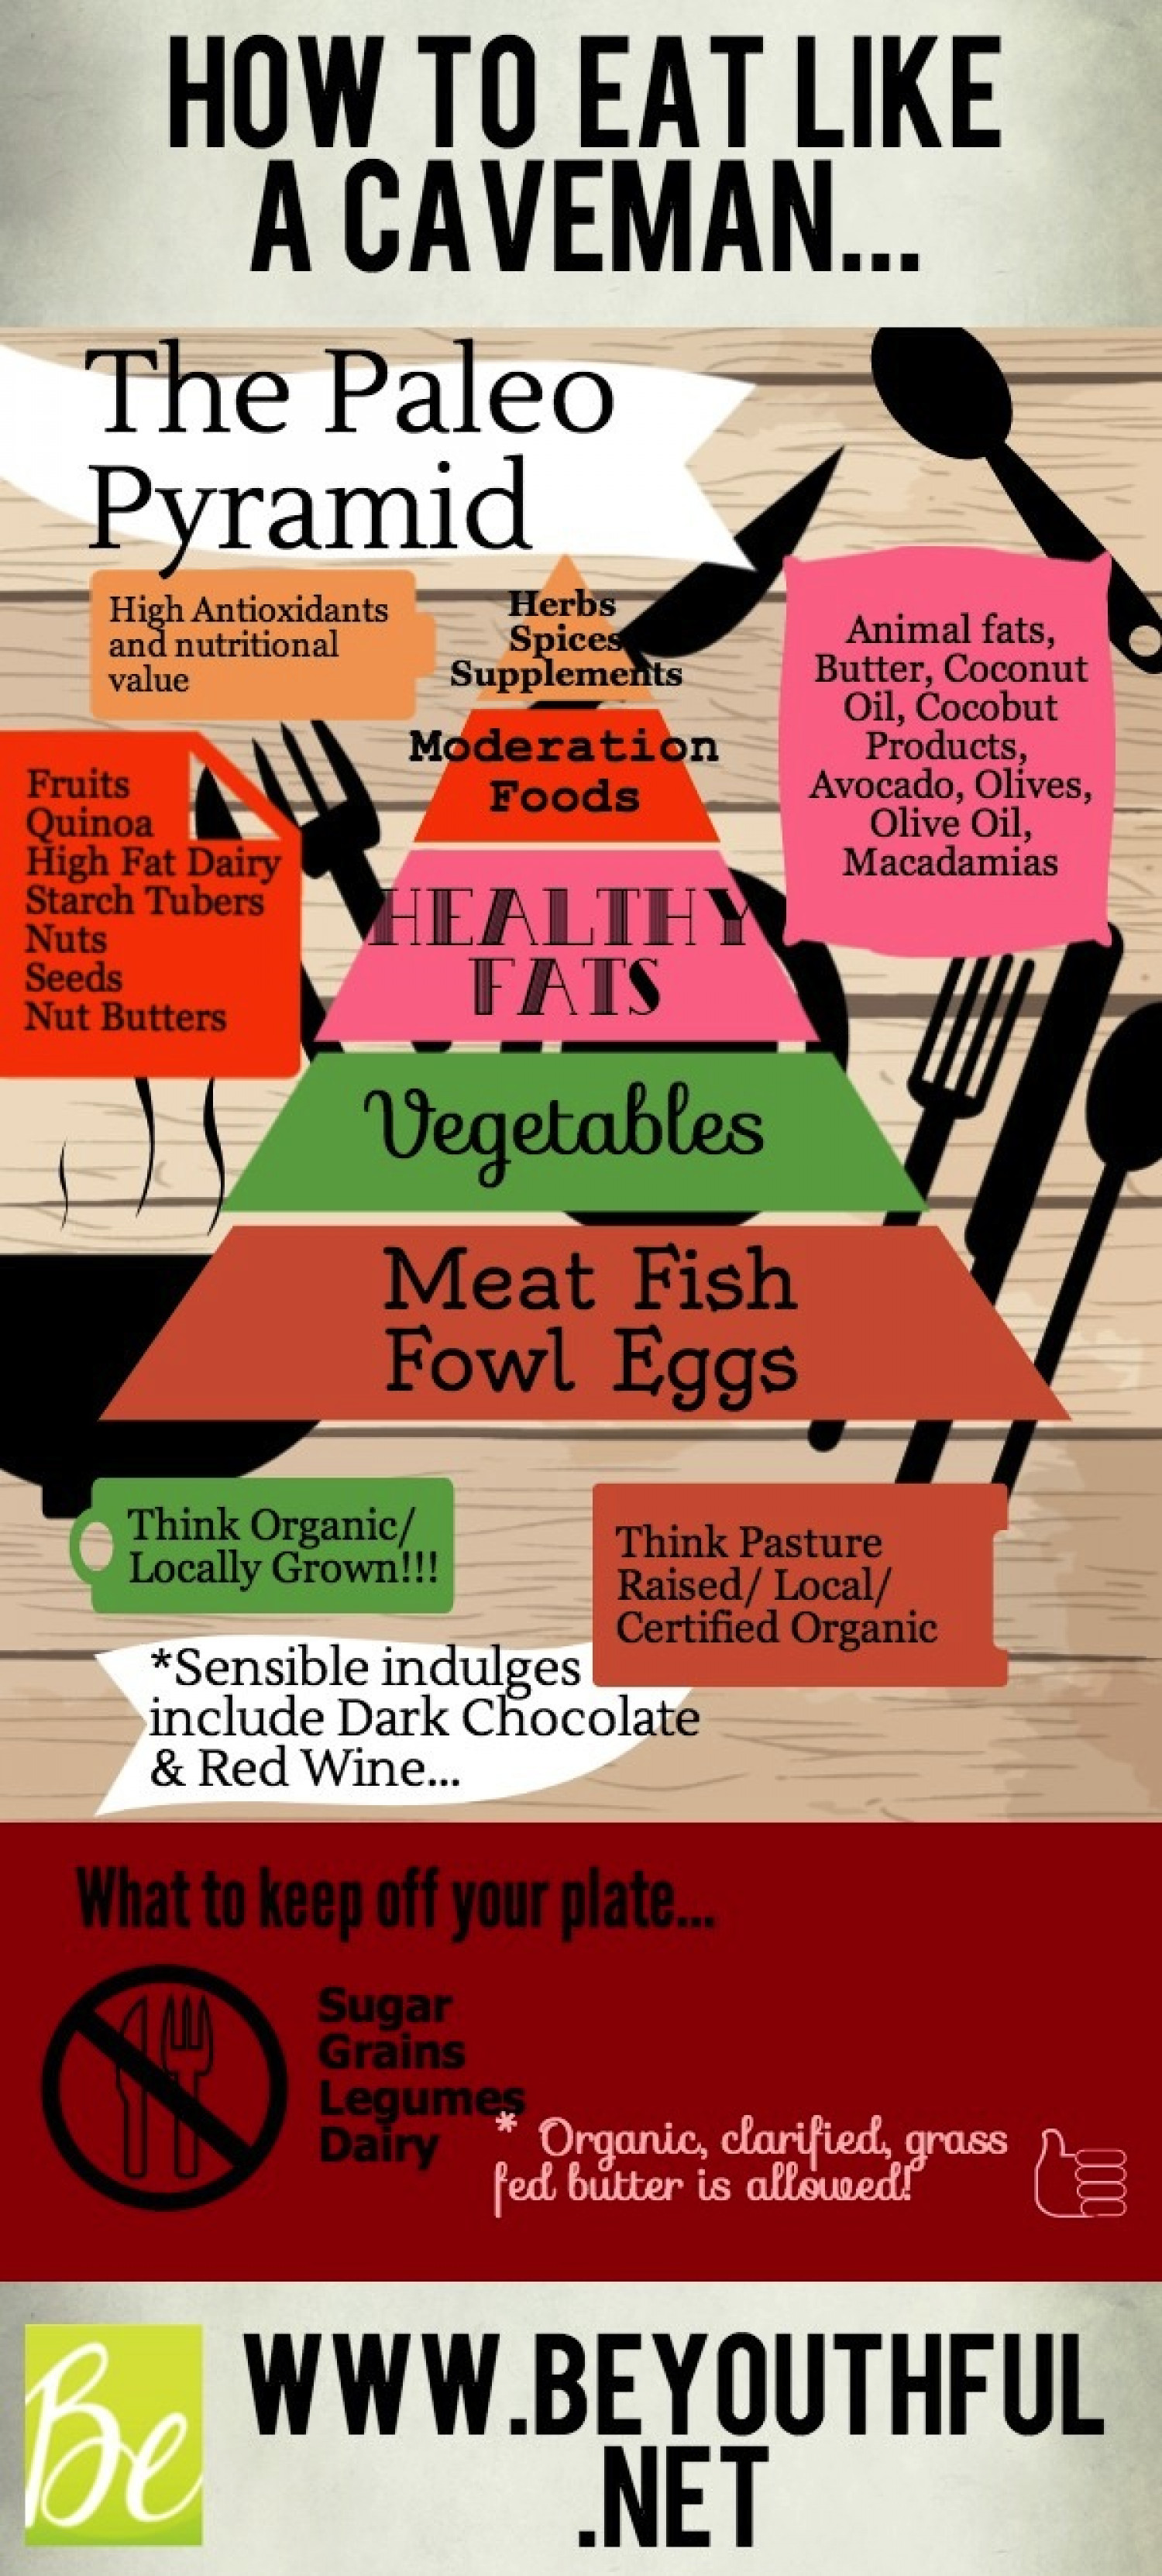 How To Eat Like A Caveman: The Paleo Pyramid Infographic